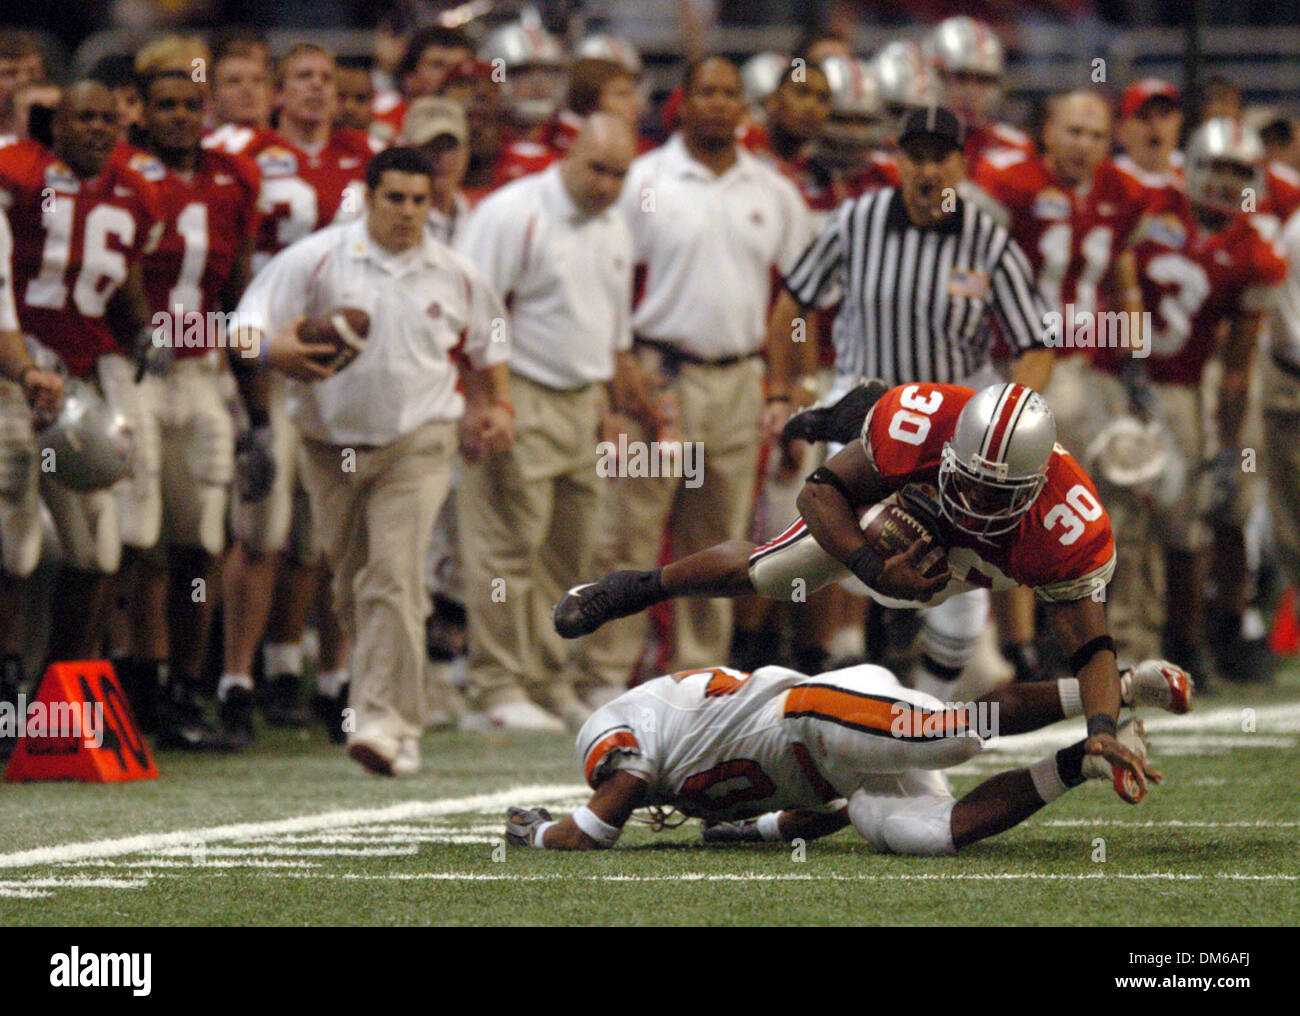 Dec 29, 2004; San Antonio, TX, USA; NCAA Football - Ohio State's running back Lydell Ross (30) gets cut down after a long run by Oklahoma State's Vernon Grant in the 3rd quarter during the 2004 MasterCard Alamo Bowl in the Alamo Dome in San Antonio. - Stock Image